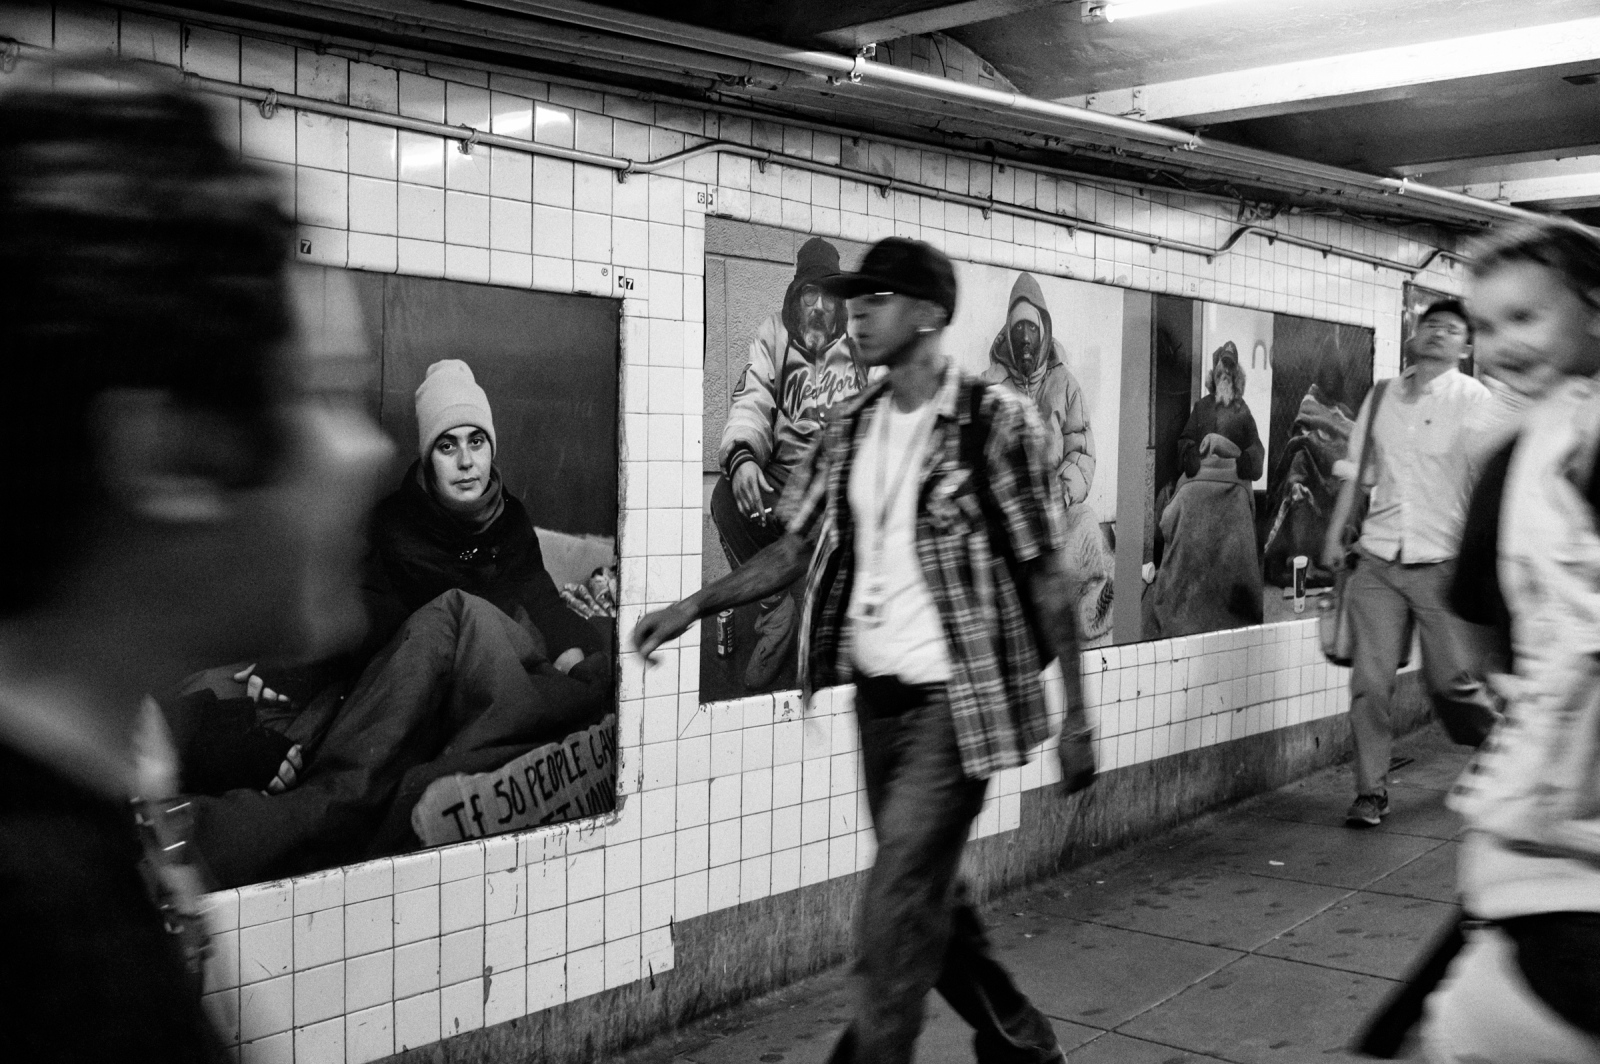 People walk through a pathway and photo campaign for homeless in NY by Andres Serrano are seen on the wall in W 4 St subway station on Jun. 16, 2014 in Manhattan, New York.